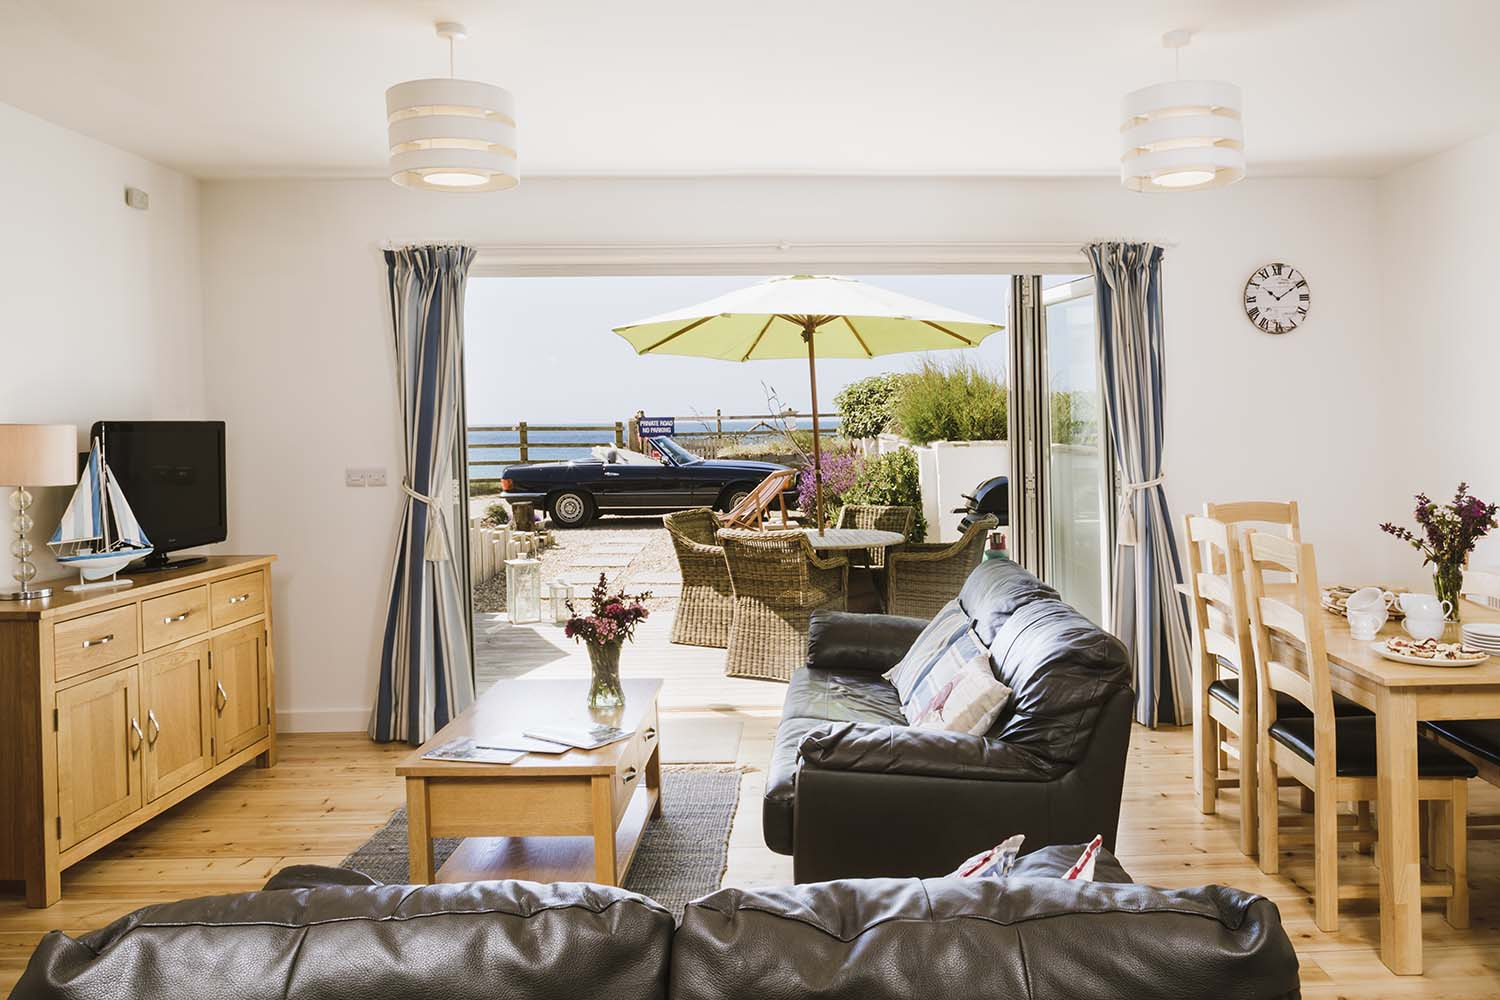 The Beach living area with patio doors open